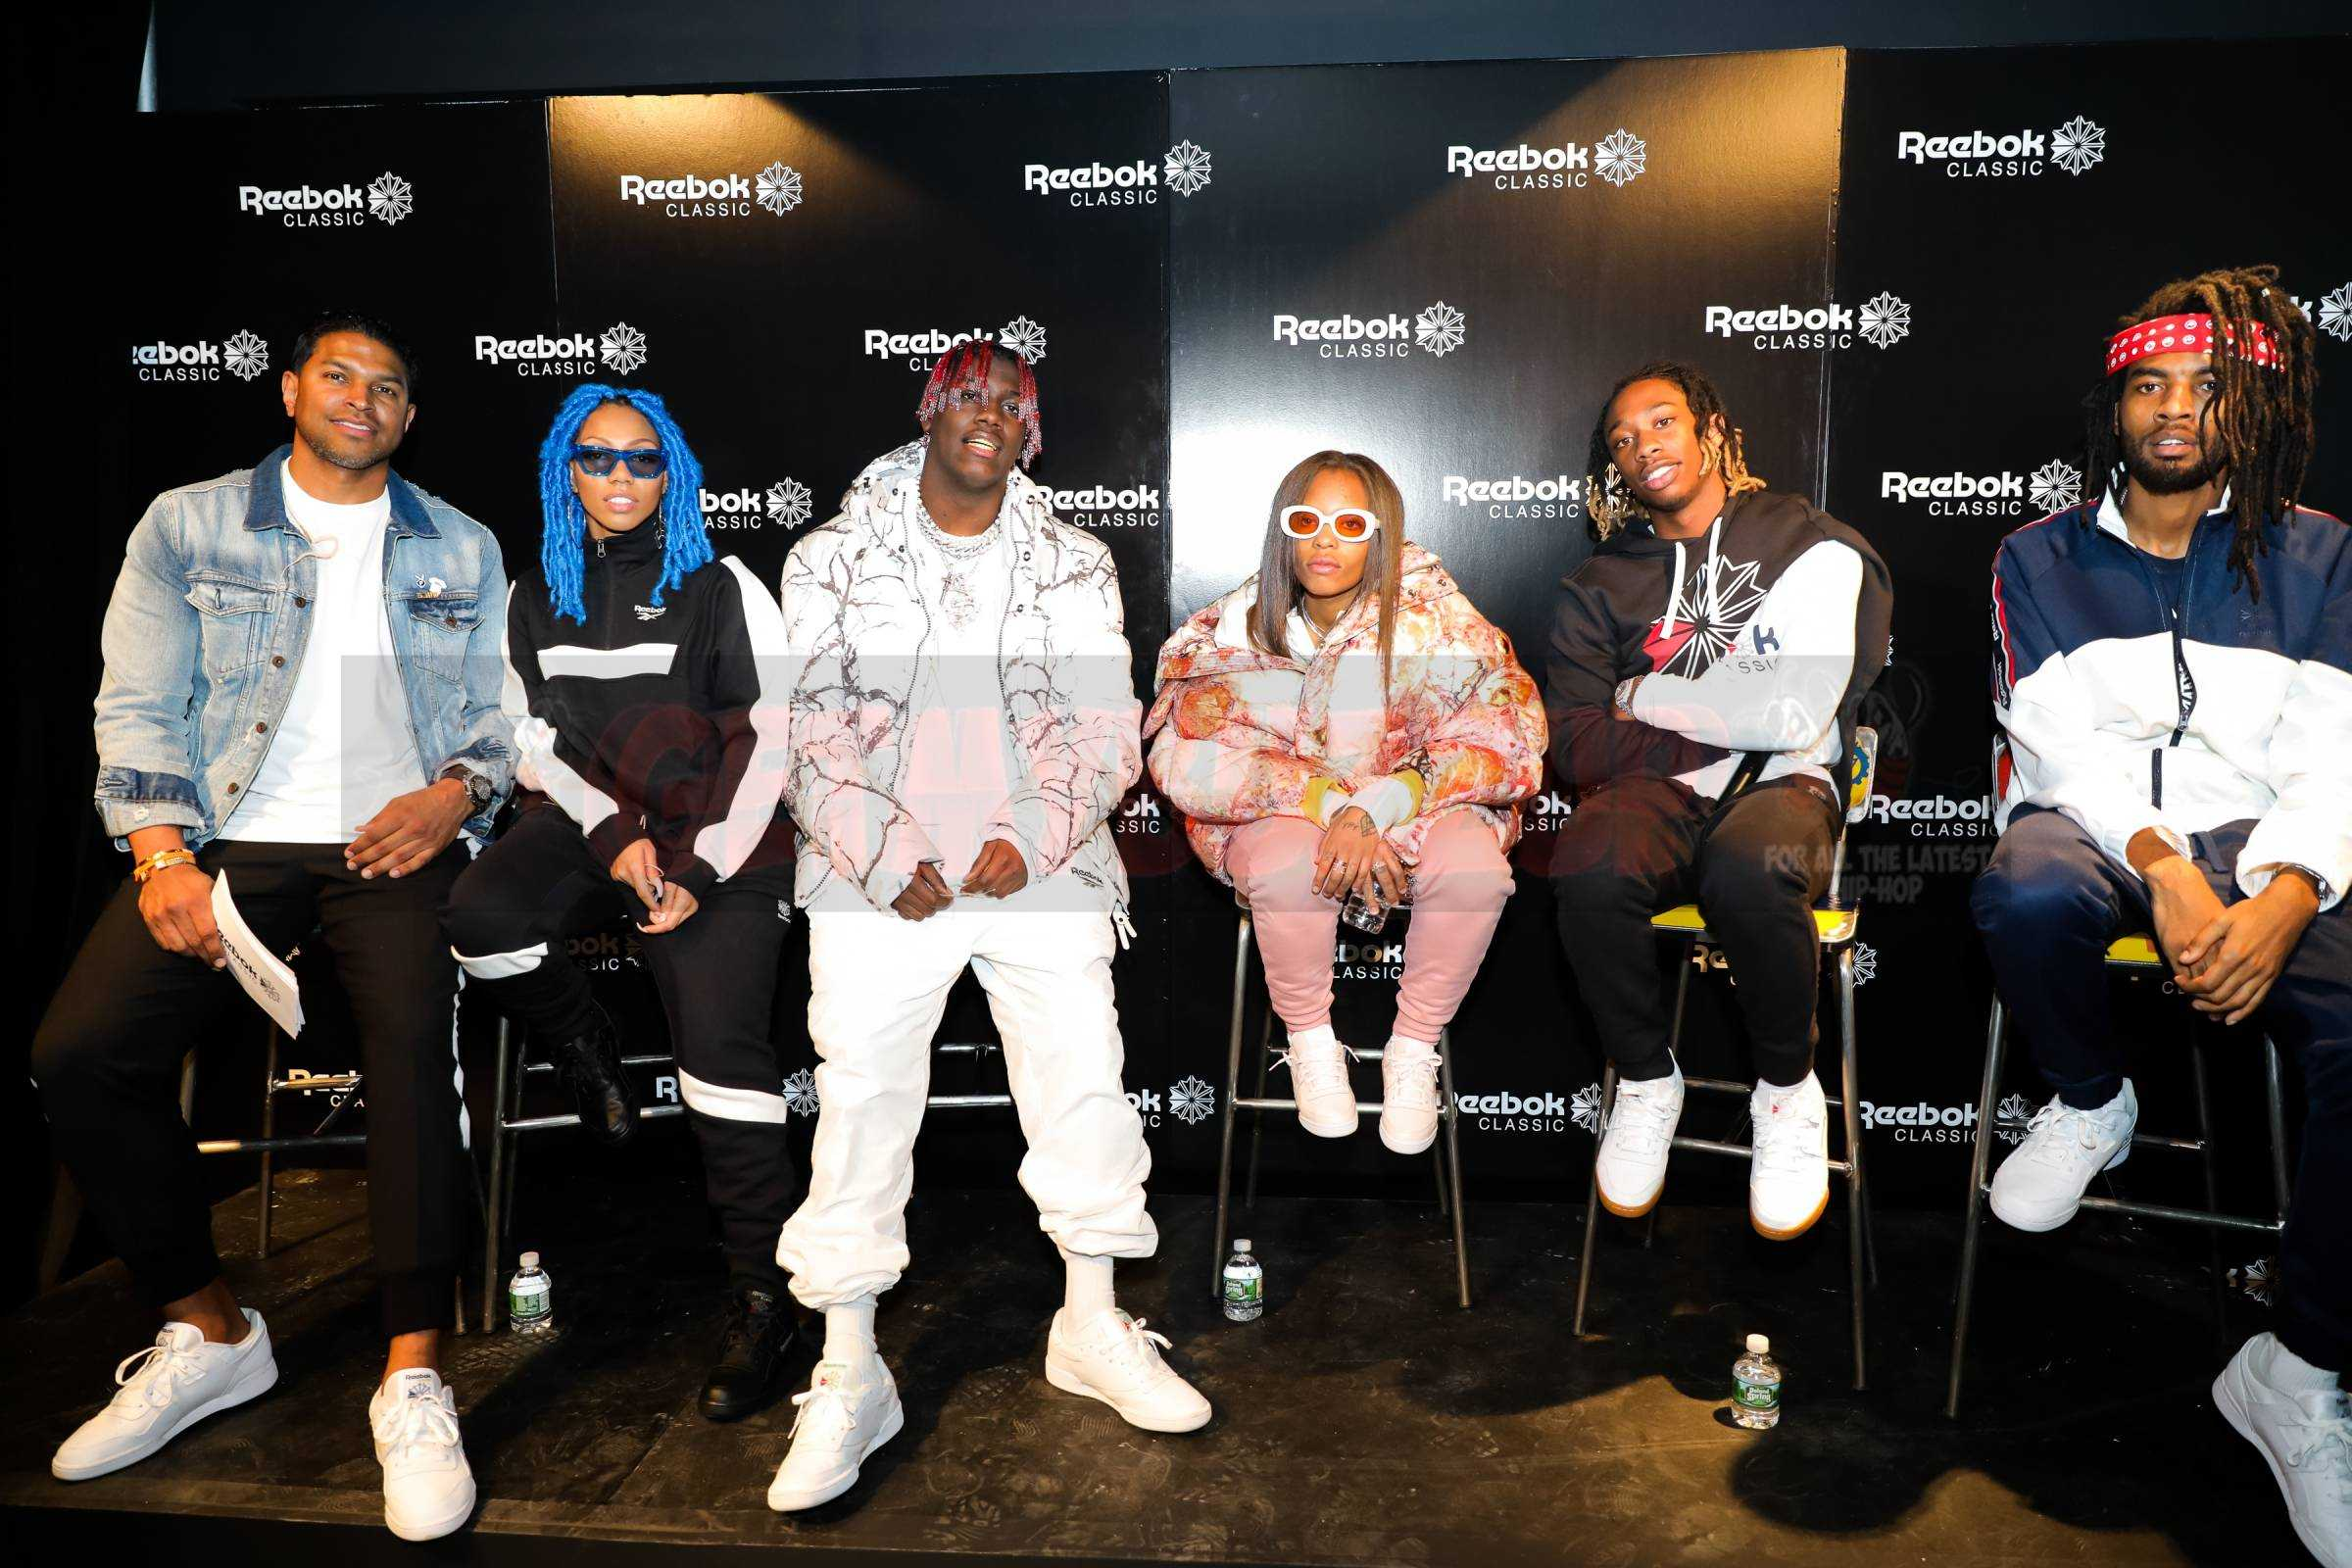 REEBOK CLASSIC UNITES TWO STYLE ICONS - THE WORKOUT PLUS SNEAKER AND LIL YACHTY, WITH AN EPIC EXPERIENCE IN NYC